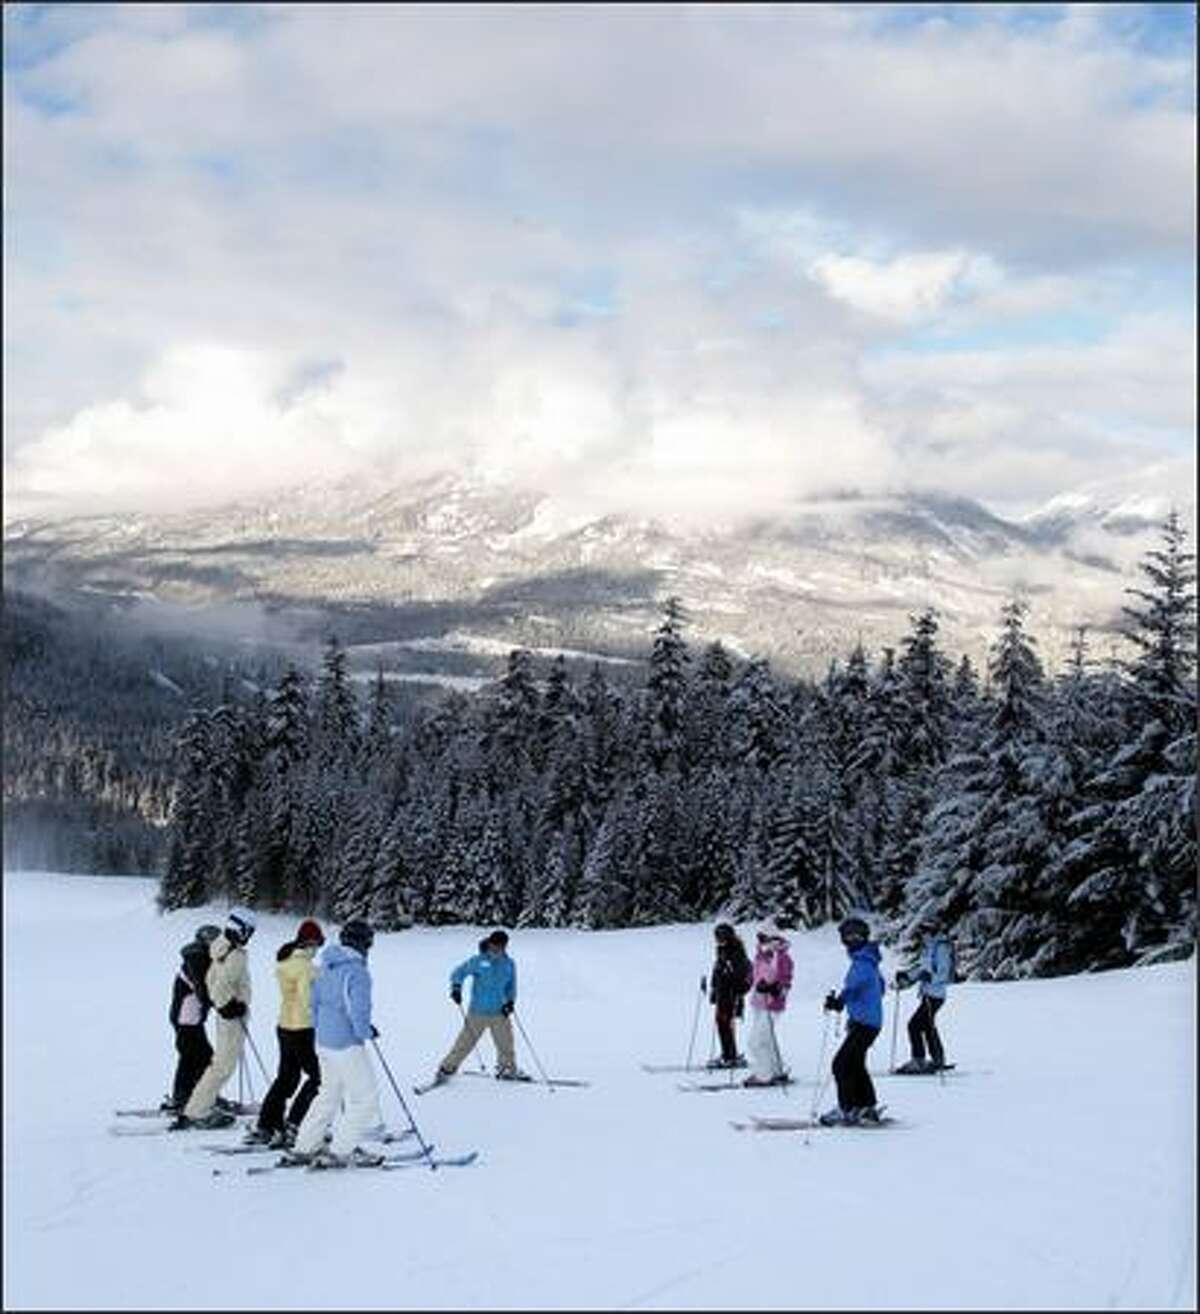 Roxy All-Star Ski Camp instructor Kylie Bertuch teaches a group of eight women at Whistler Blackcomb Ski Resort.